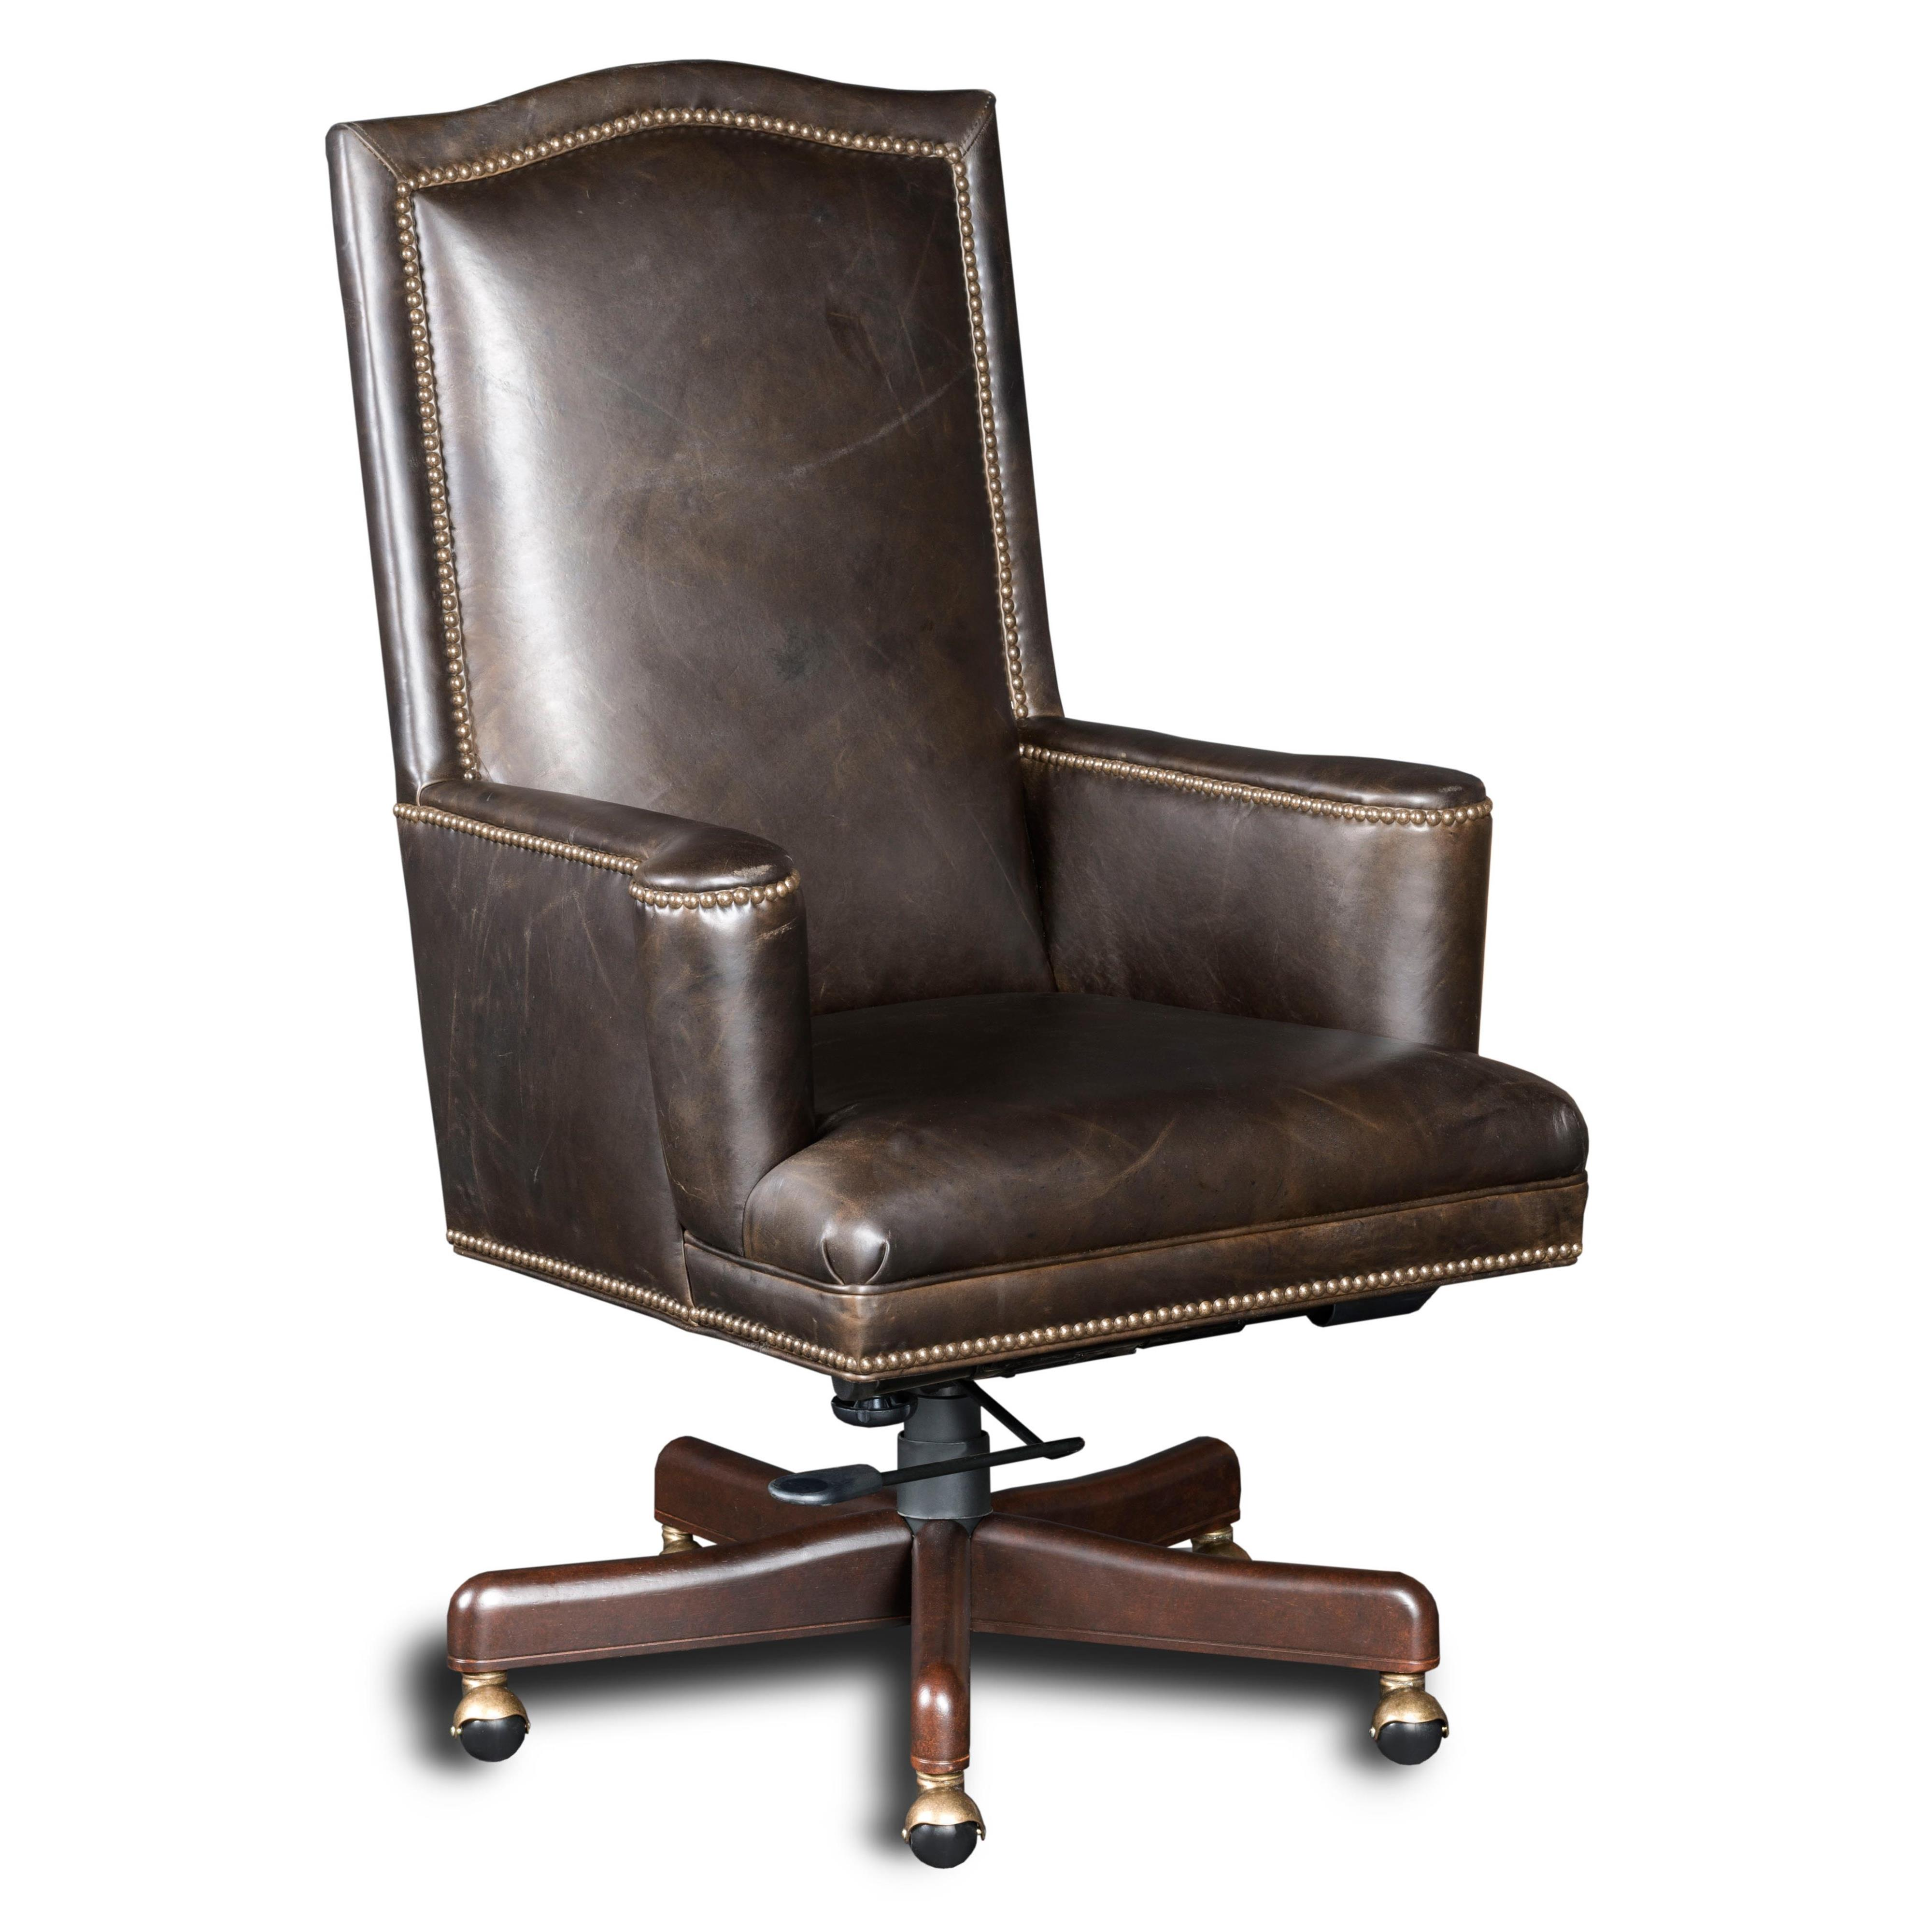 Executive Seating Cindy Executive Swivel Tilt Chair by Hooker Furniture at Fisher Home Furnishings